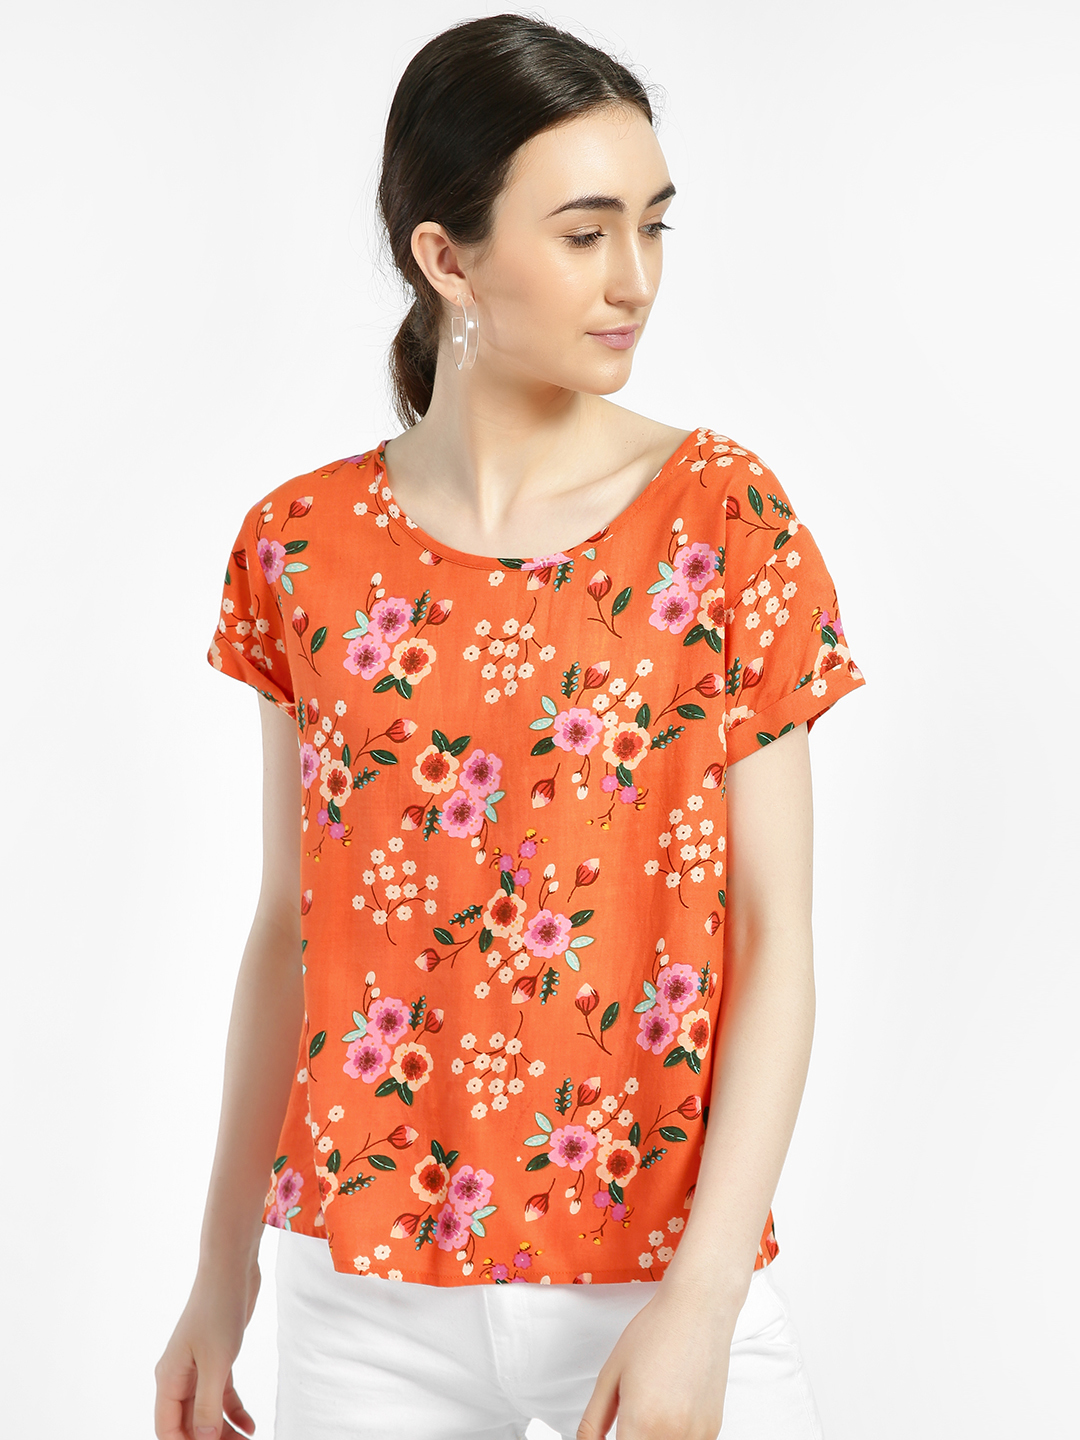 Jealous 21 Coral Floral Print Short Sleeve Top 1